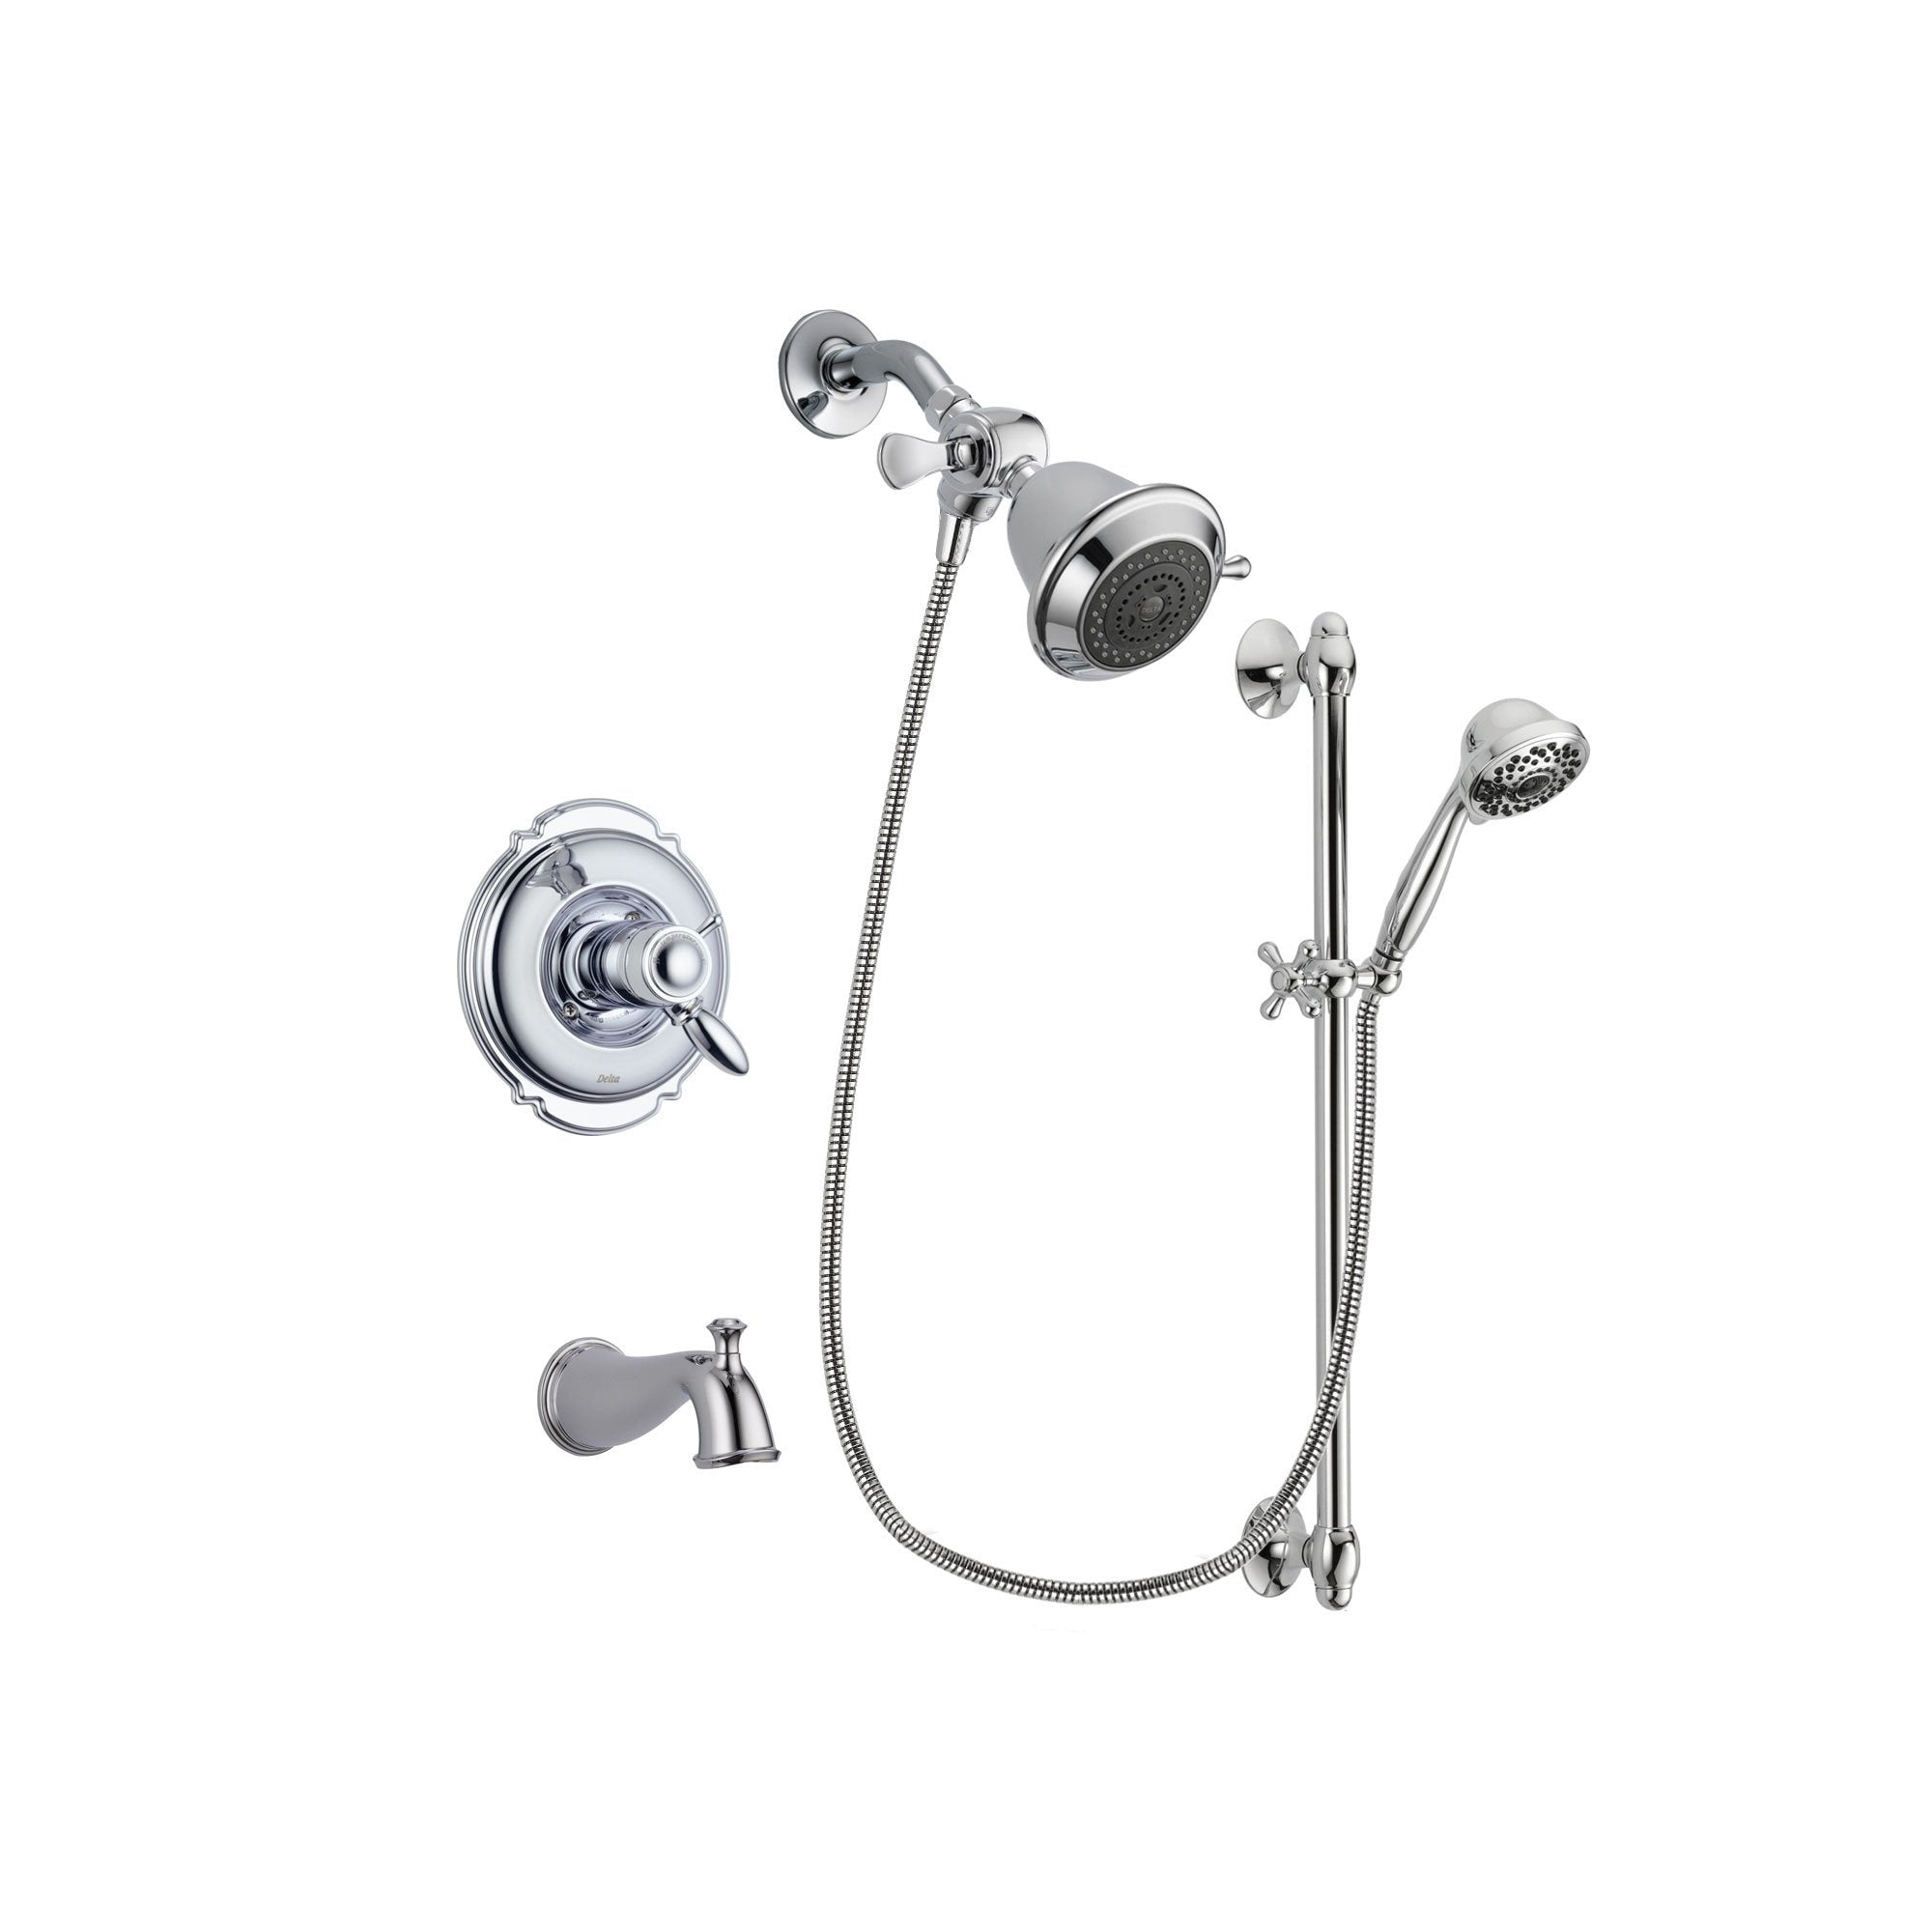 Delta Victorian Chrome Tub and Shower Faucet System with Hand Shower DSP0563V